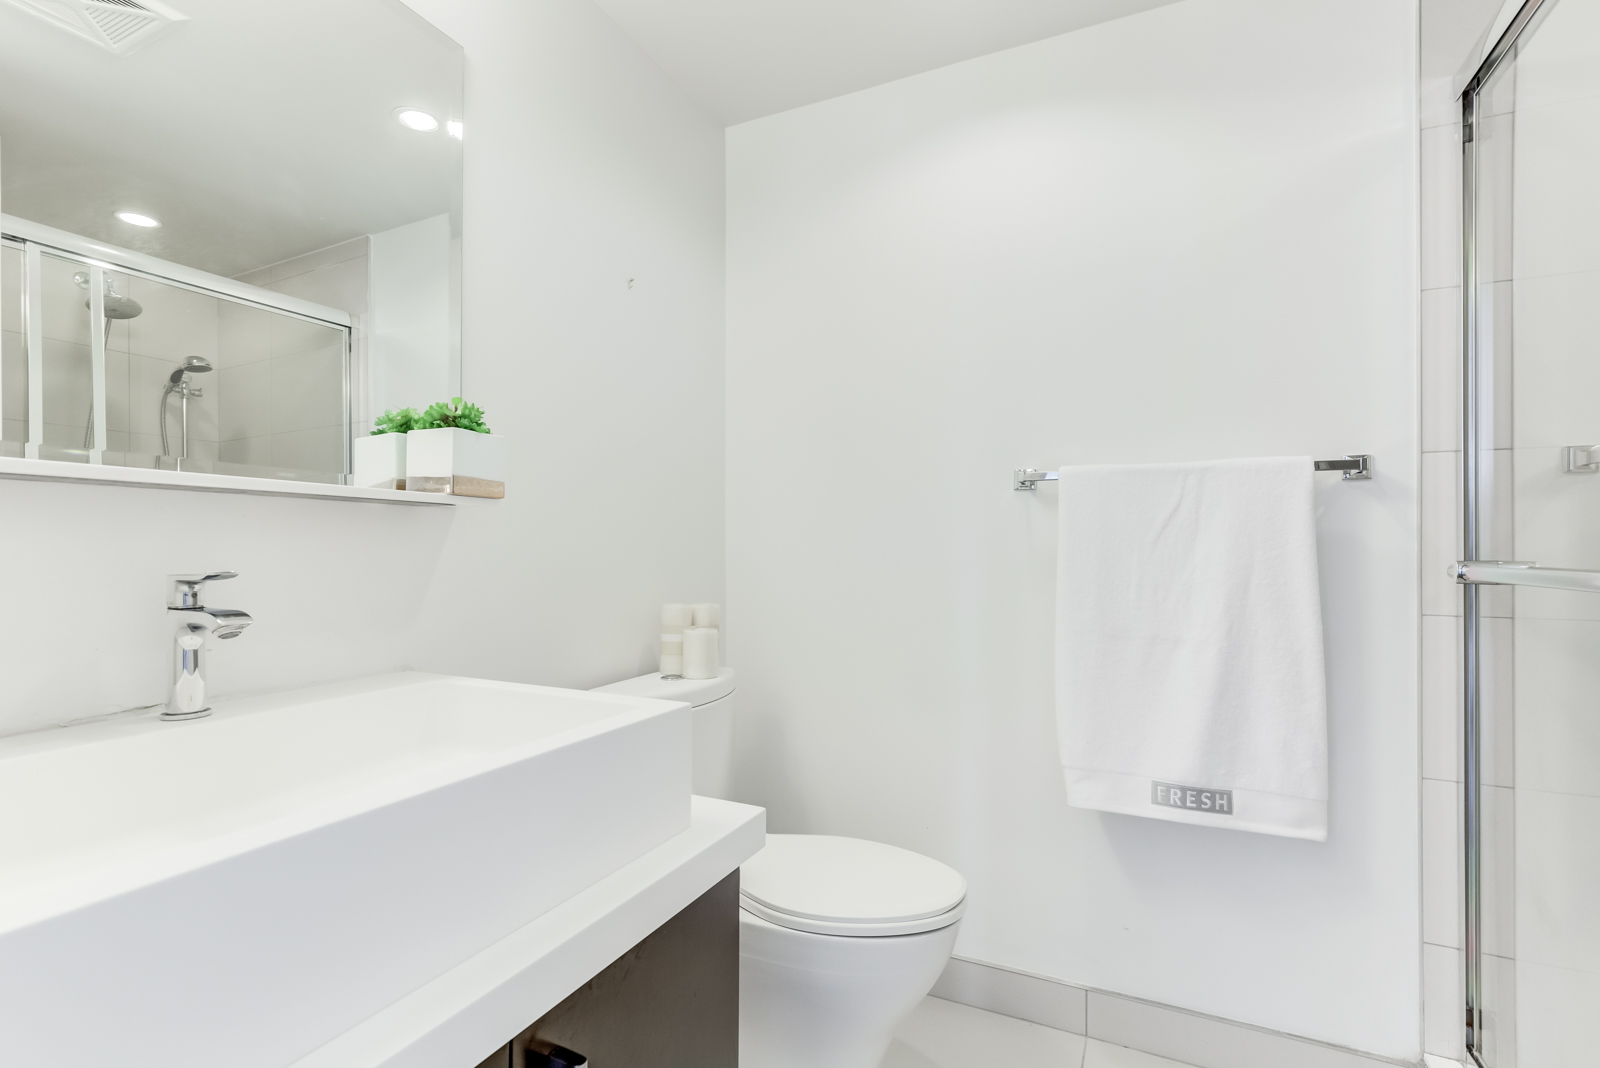 2nd bathroom with sink, shower and vanity.